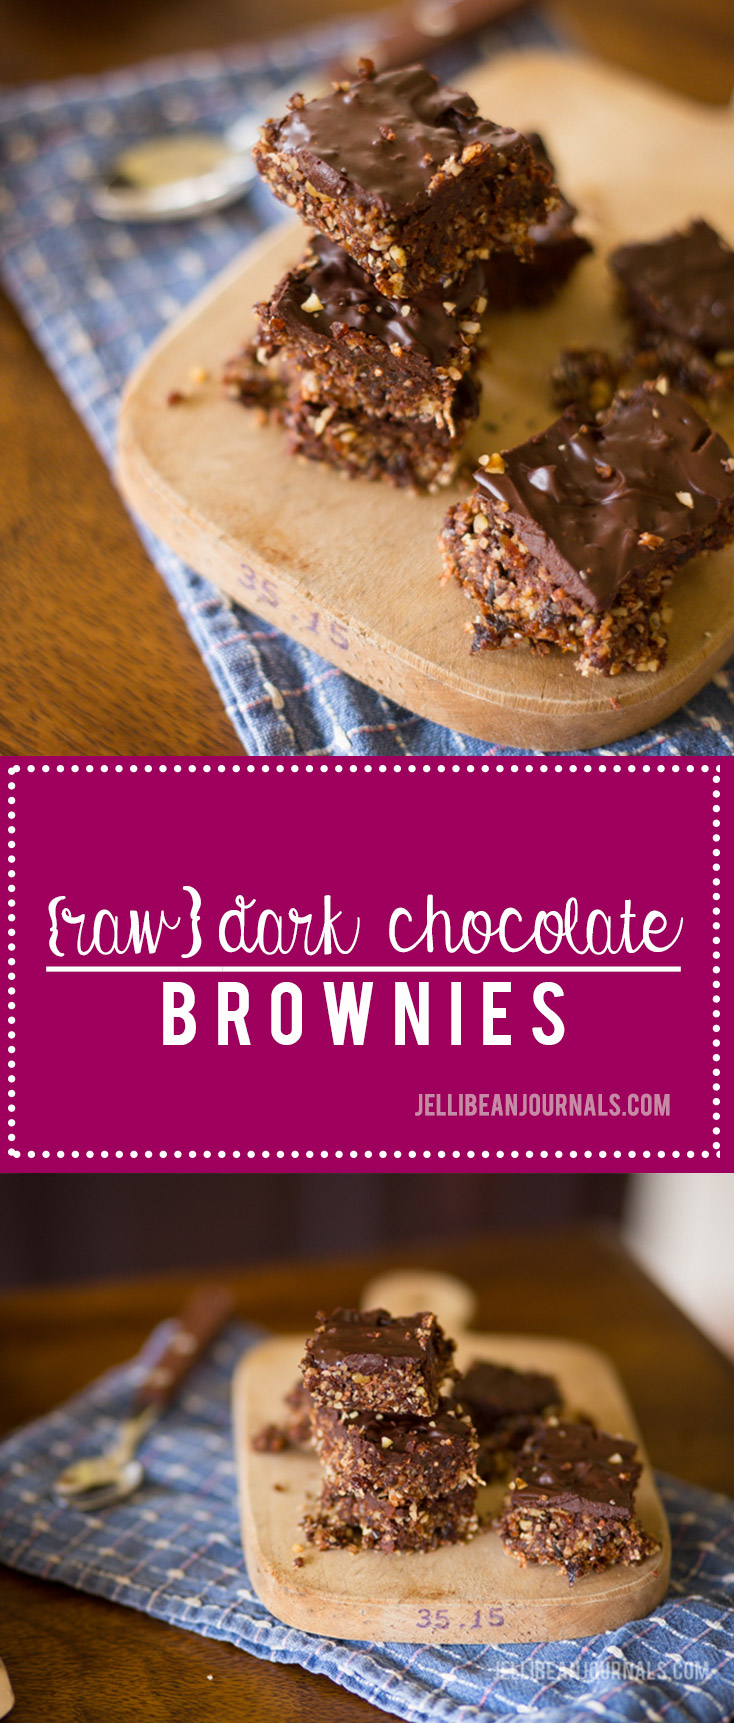 Raw dark chocolate brownies with unbelievably addictive ganache | jellibeanjournals.com